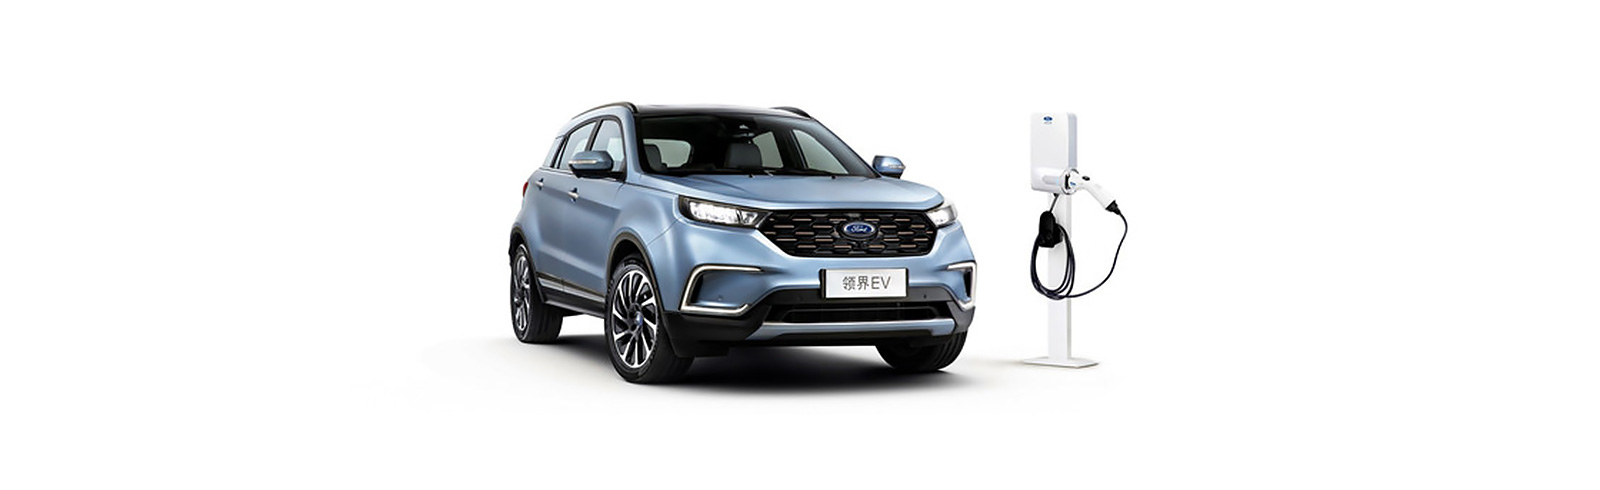 Ford introduced its first all-electric vehicle in China, calls it Territory EV